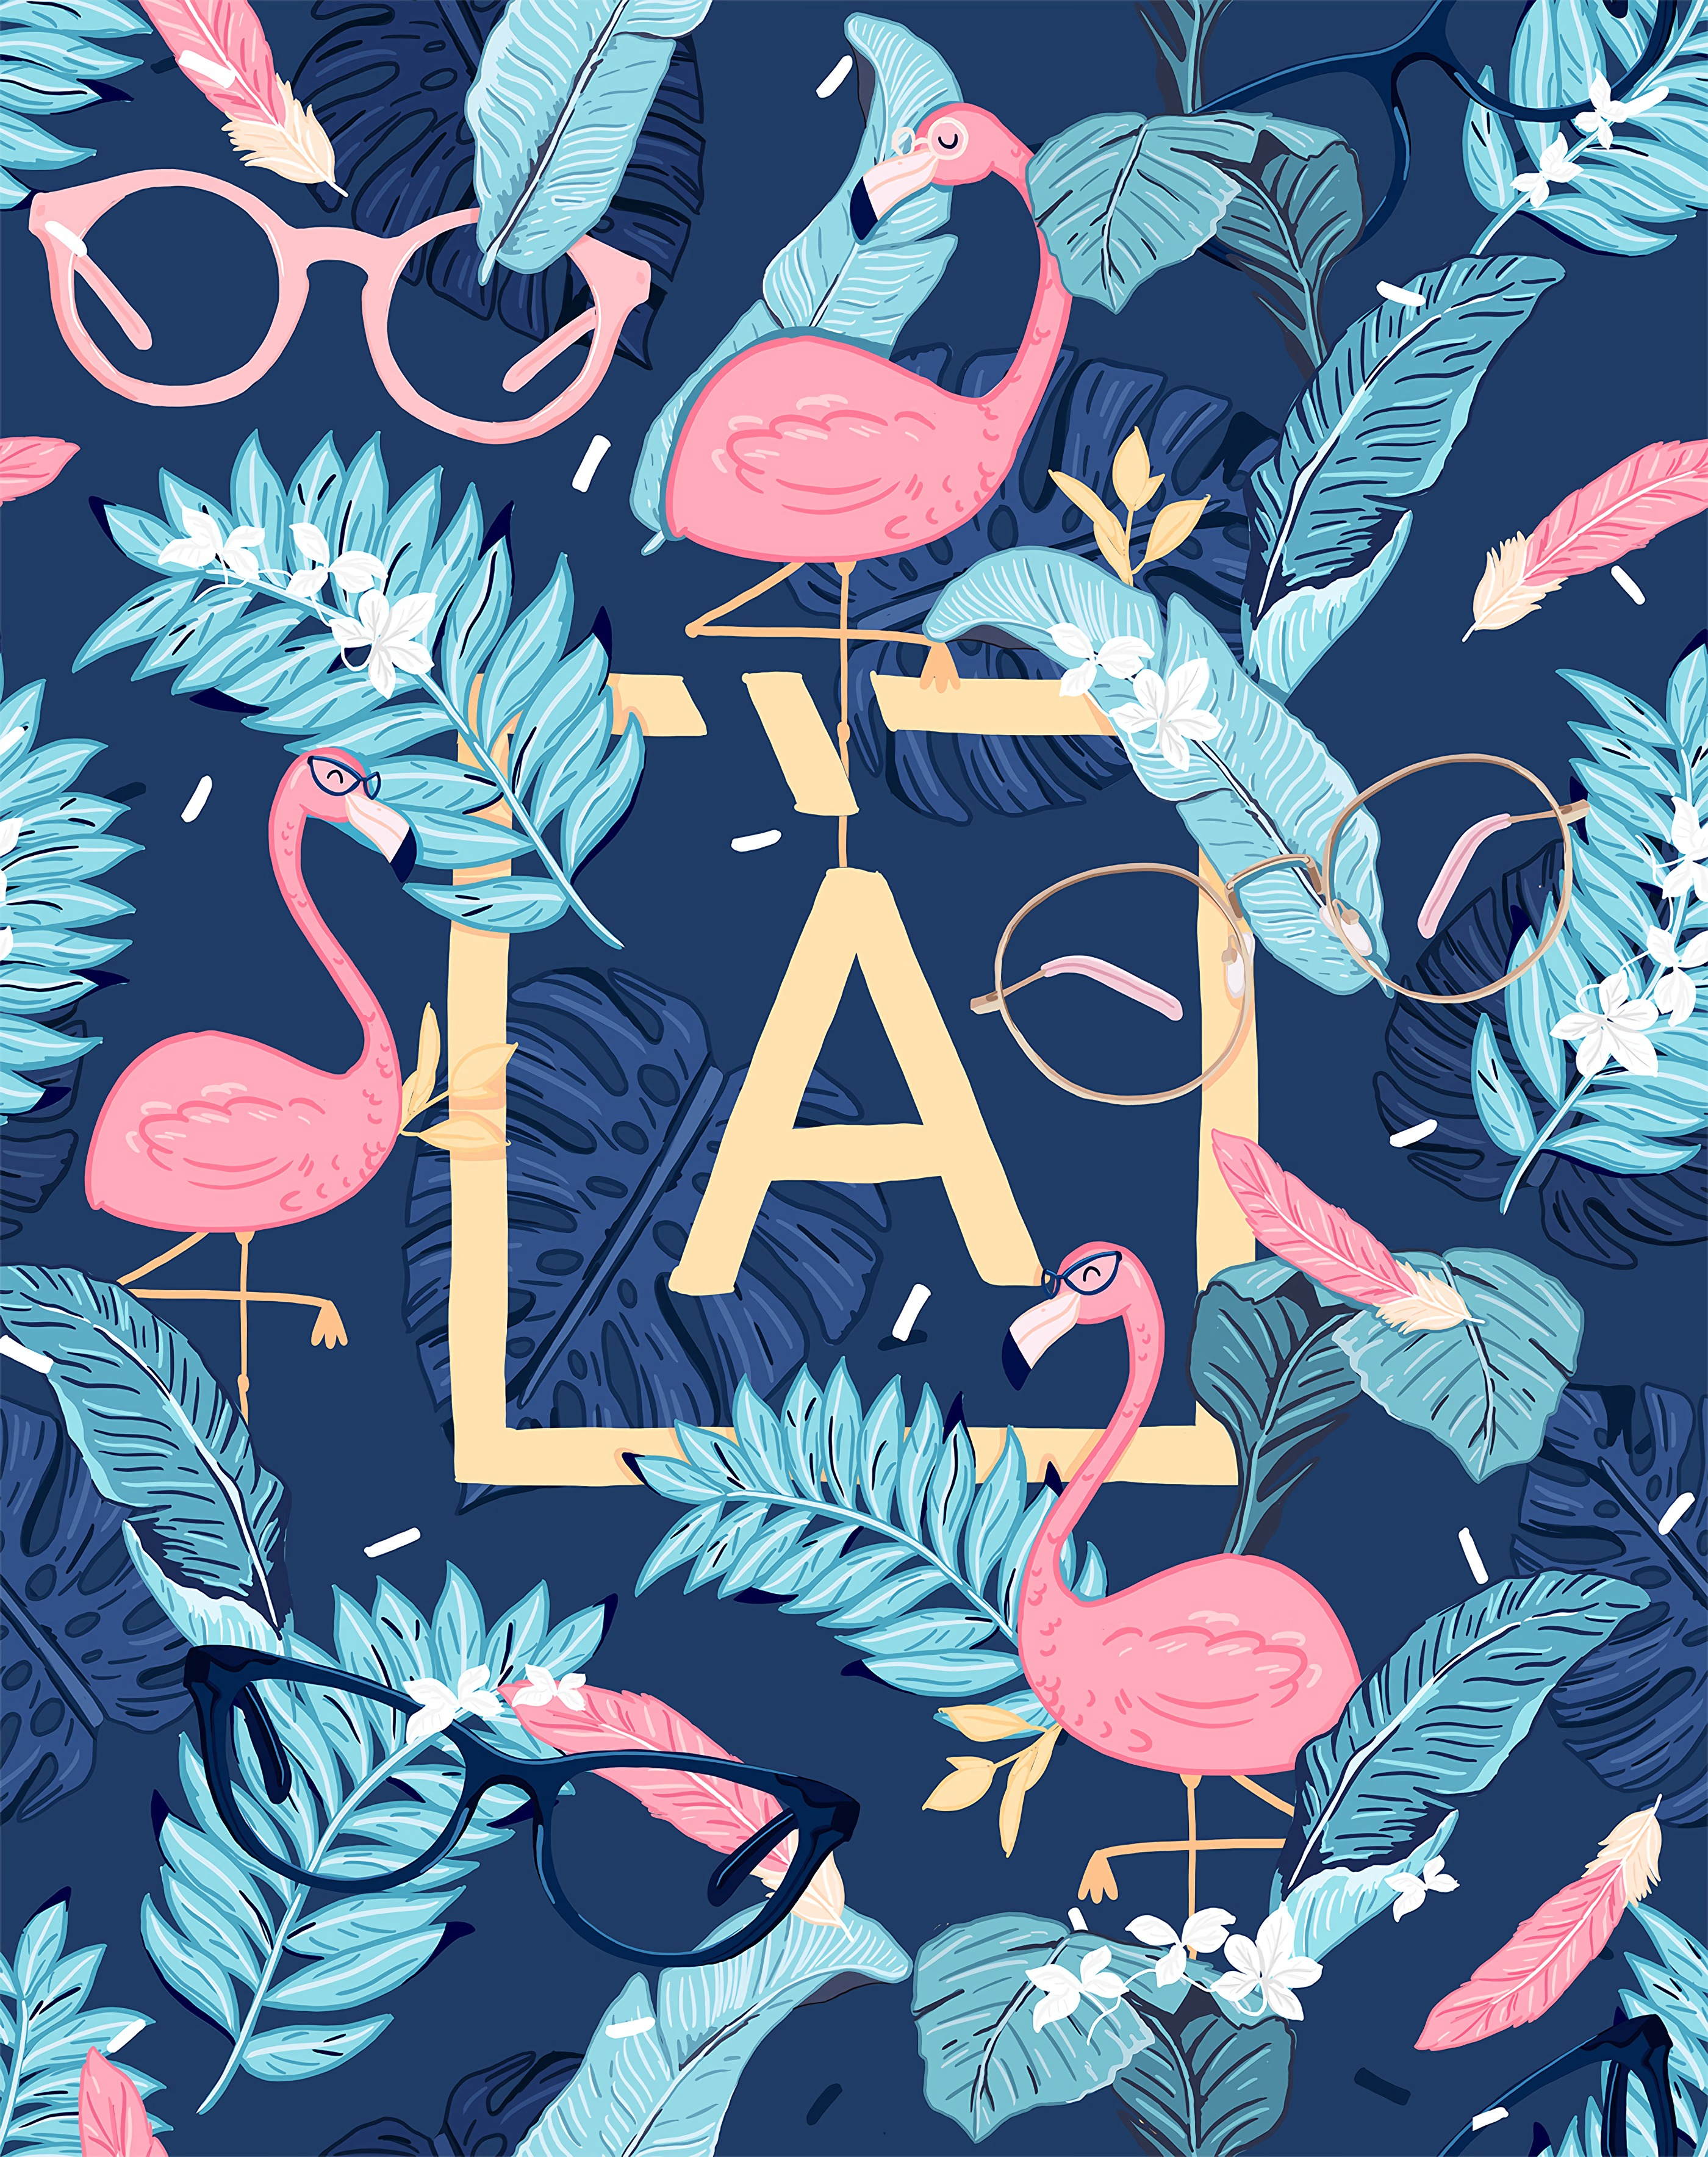 117726 download wallpaper Letter, Flamingo, Leaves, Glasses, Spectacles, Art screensavers and pictures for free